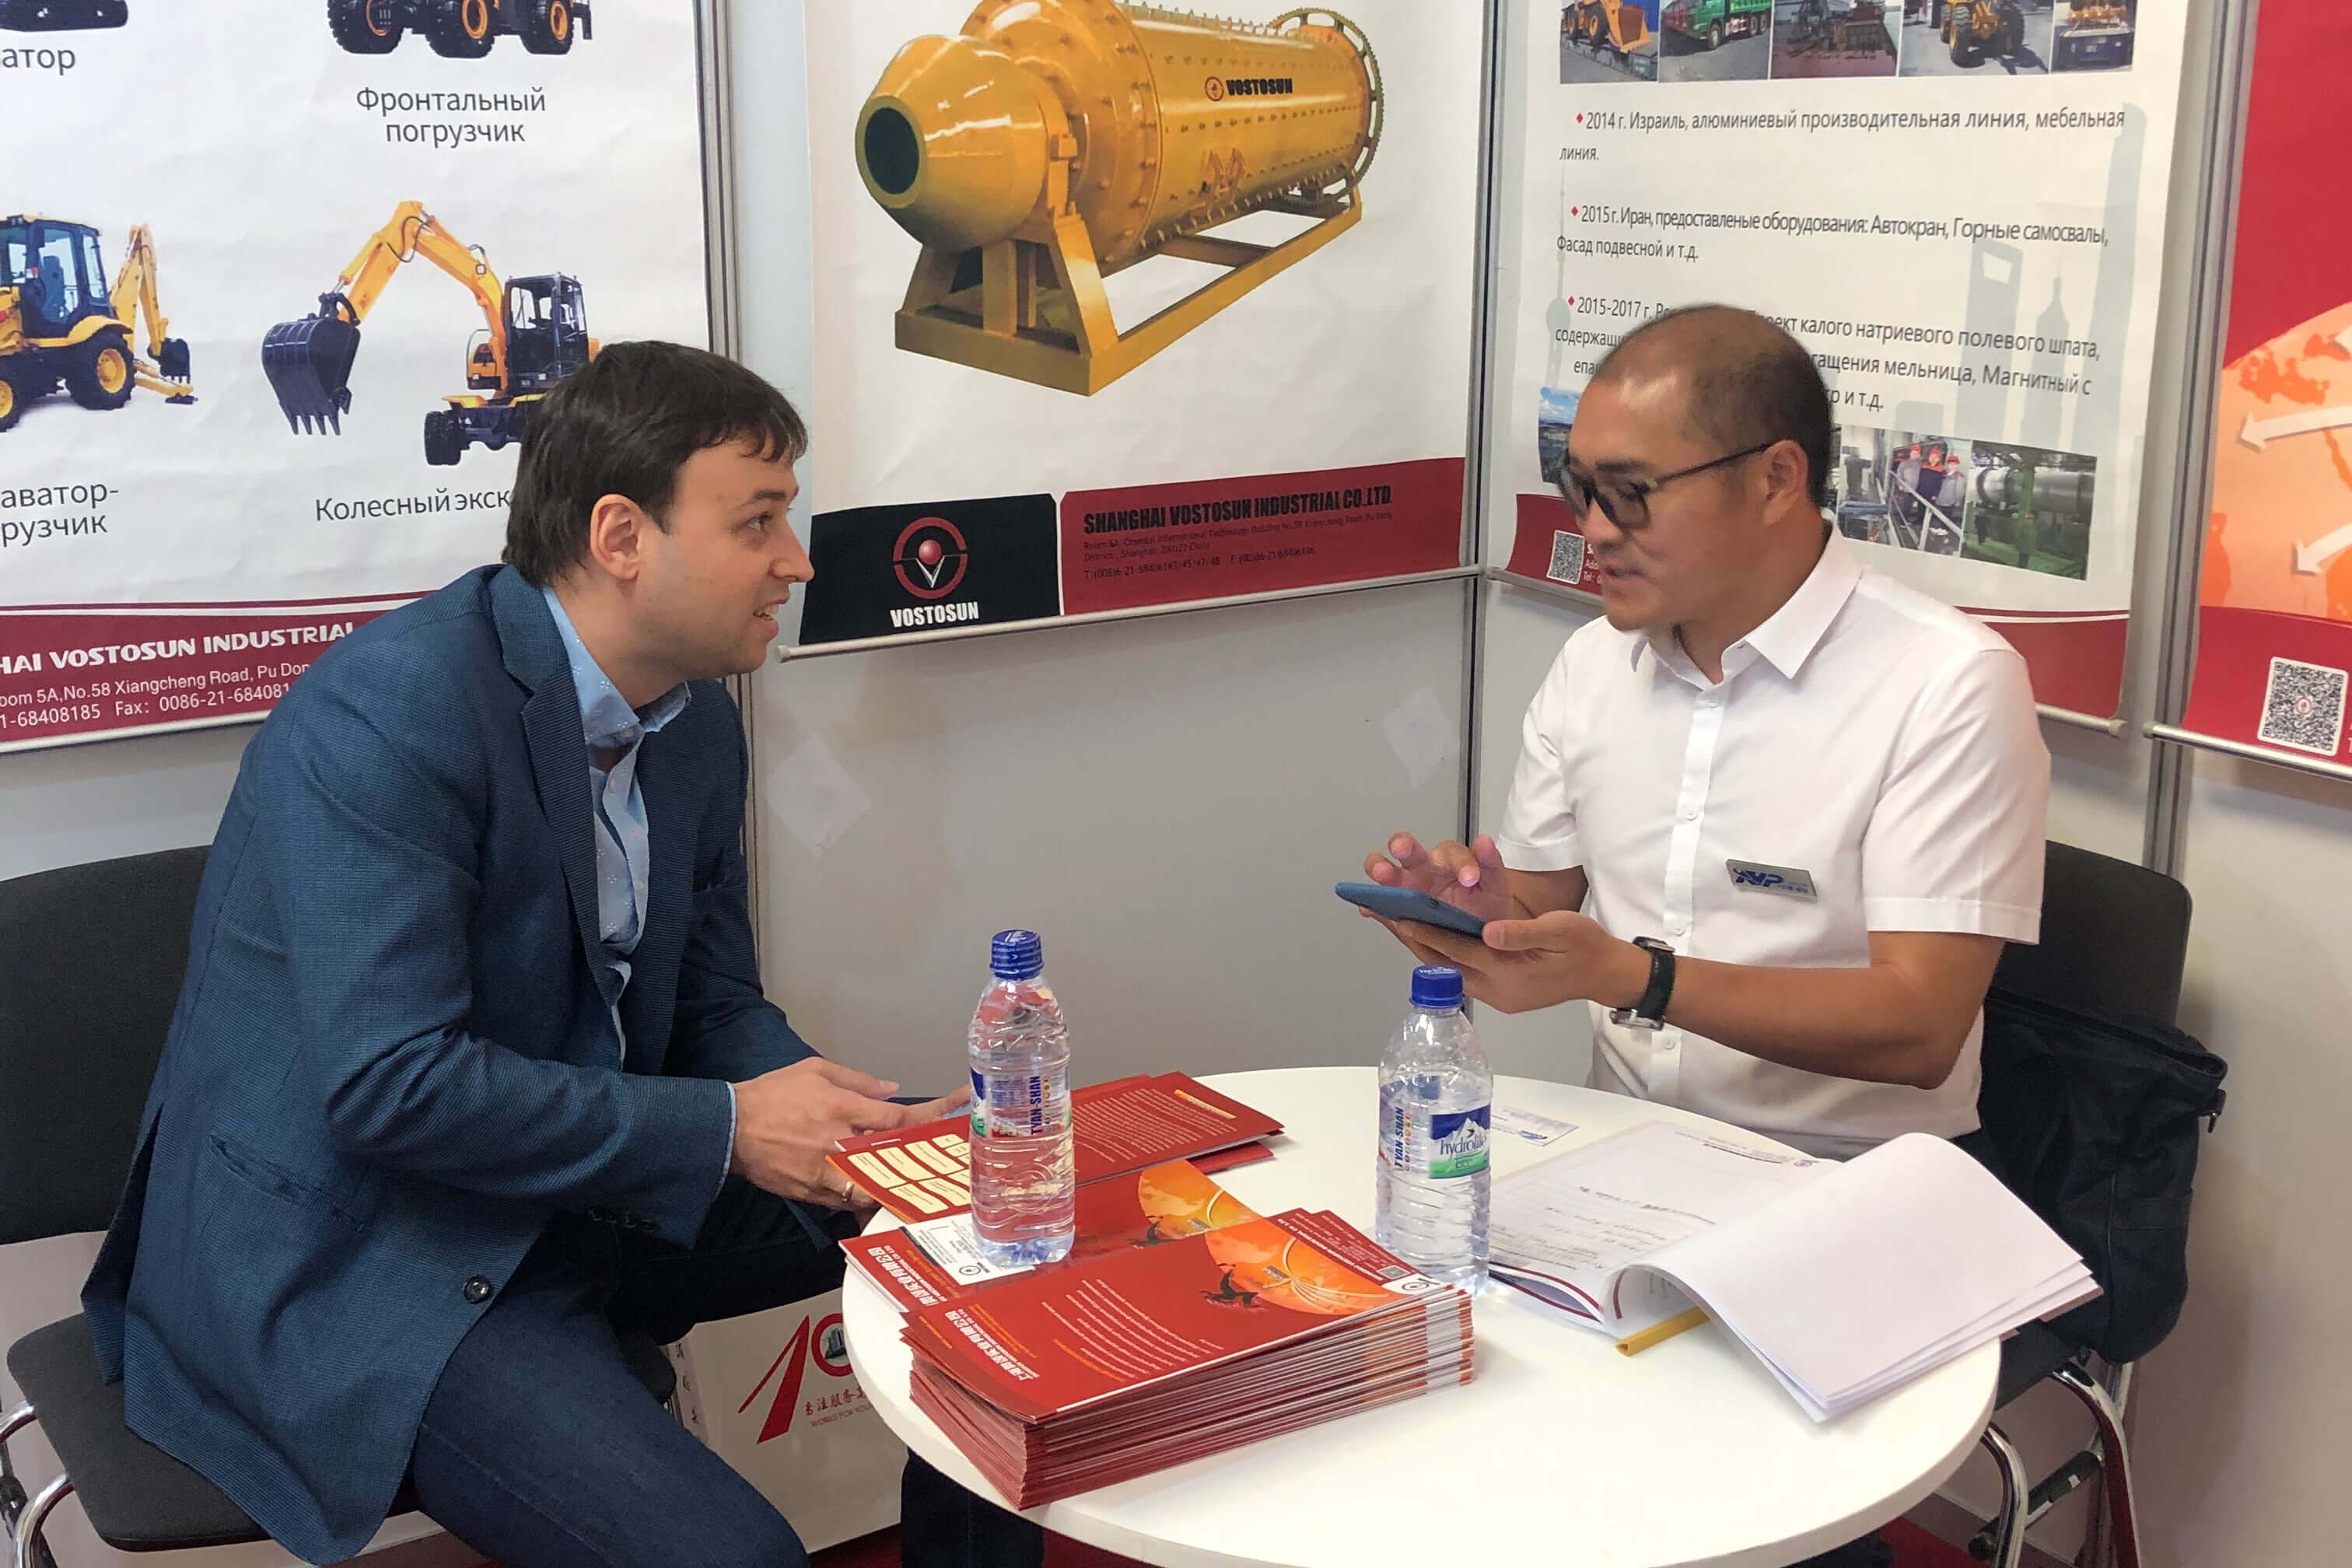 September 11, 2019,the first day of the Uzbekistan exhibition,many customers came to consult